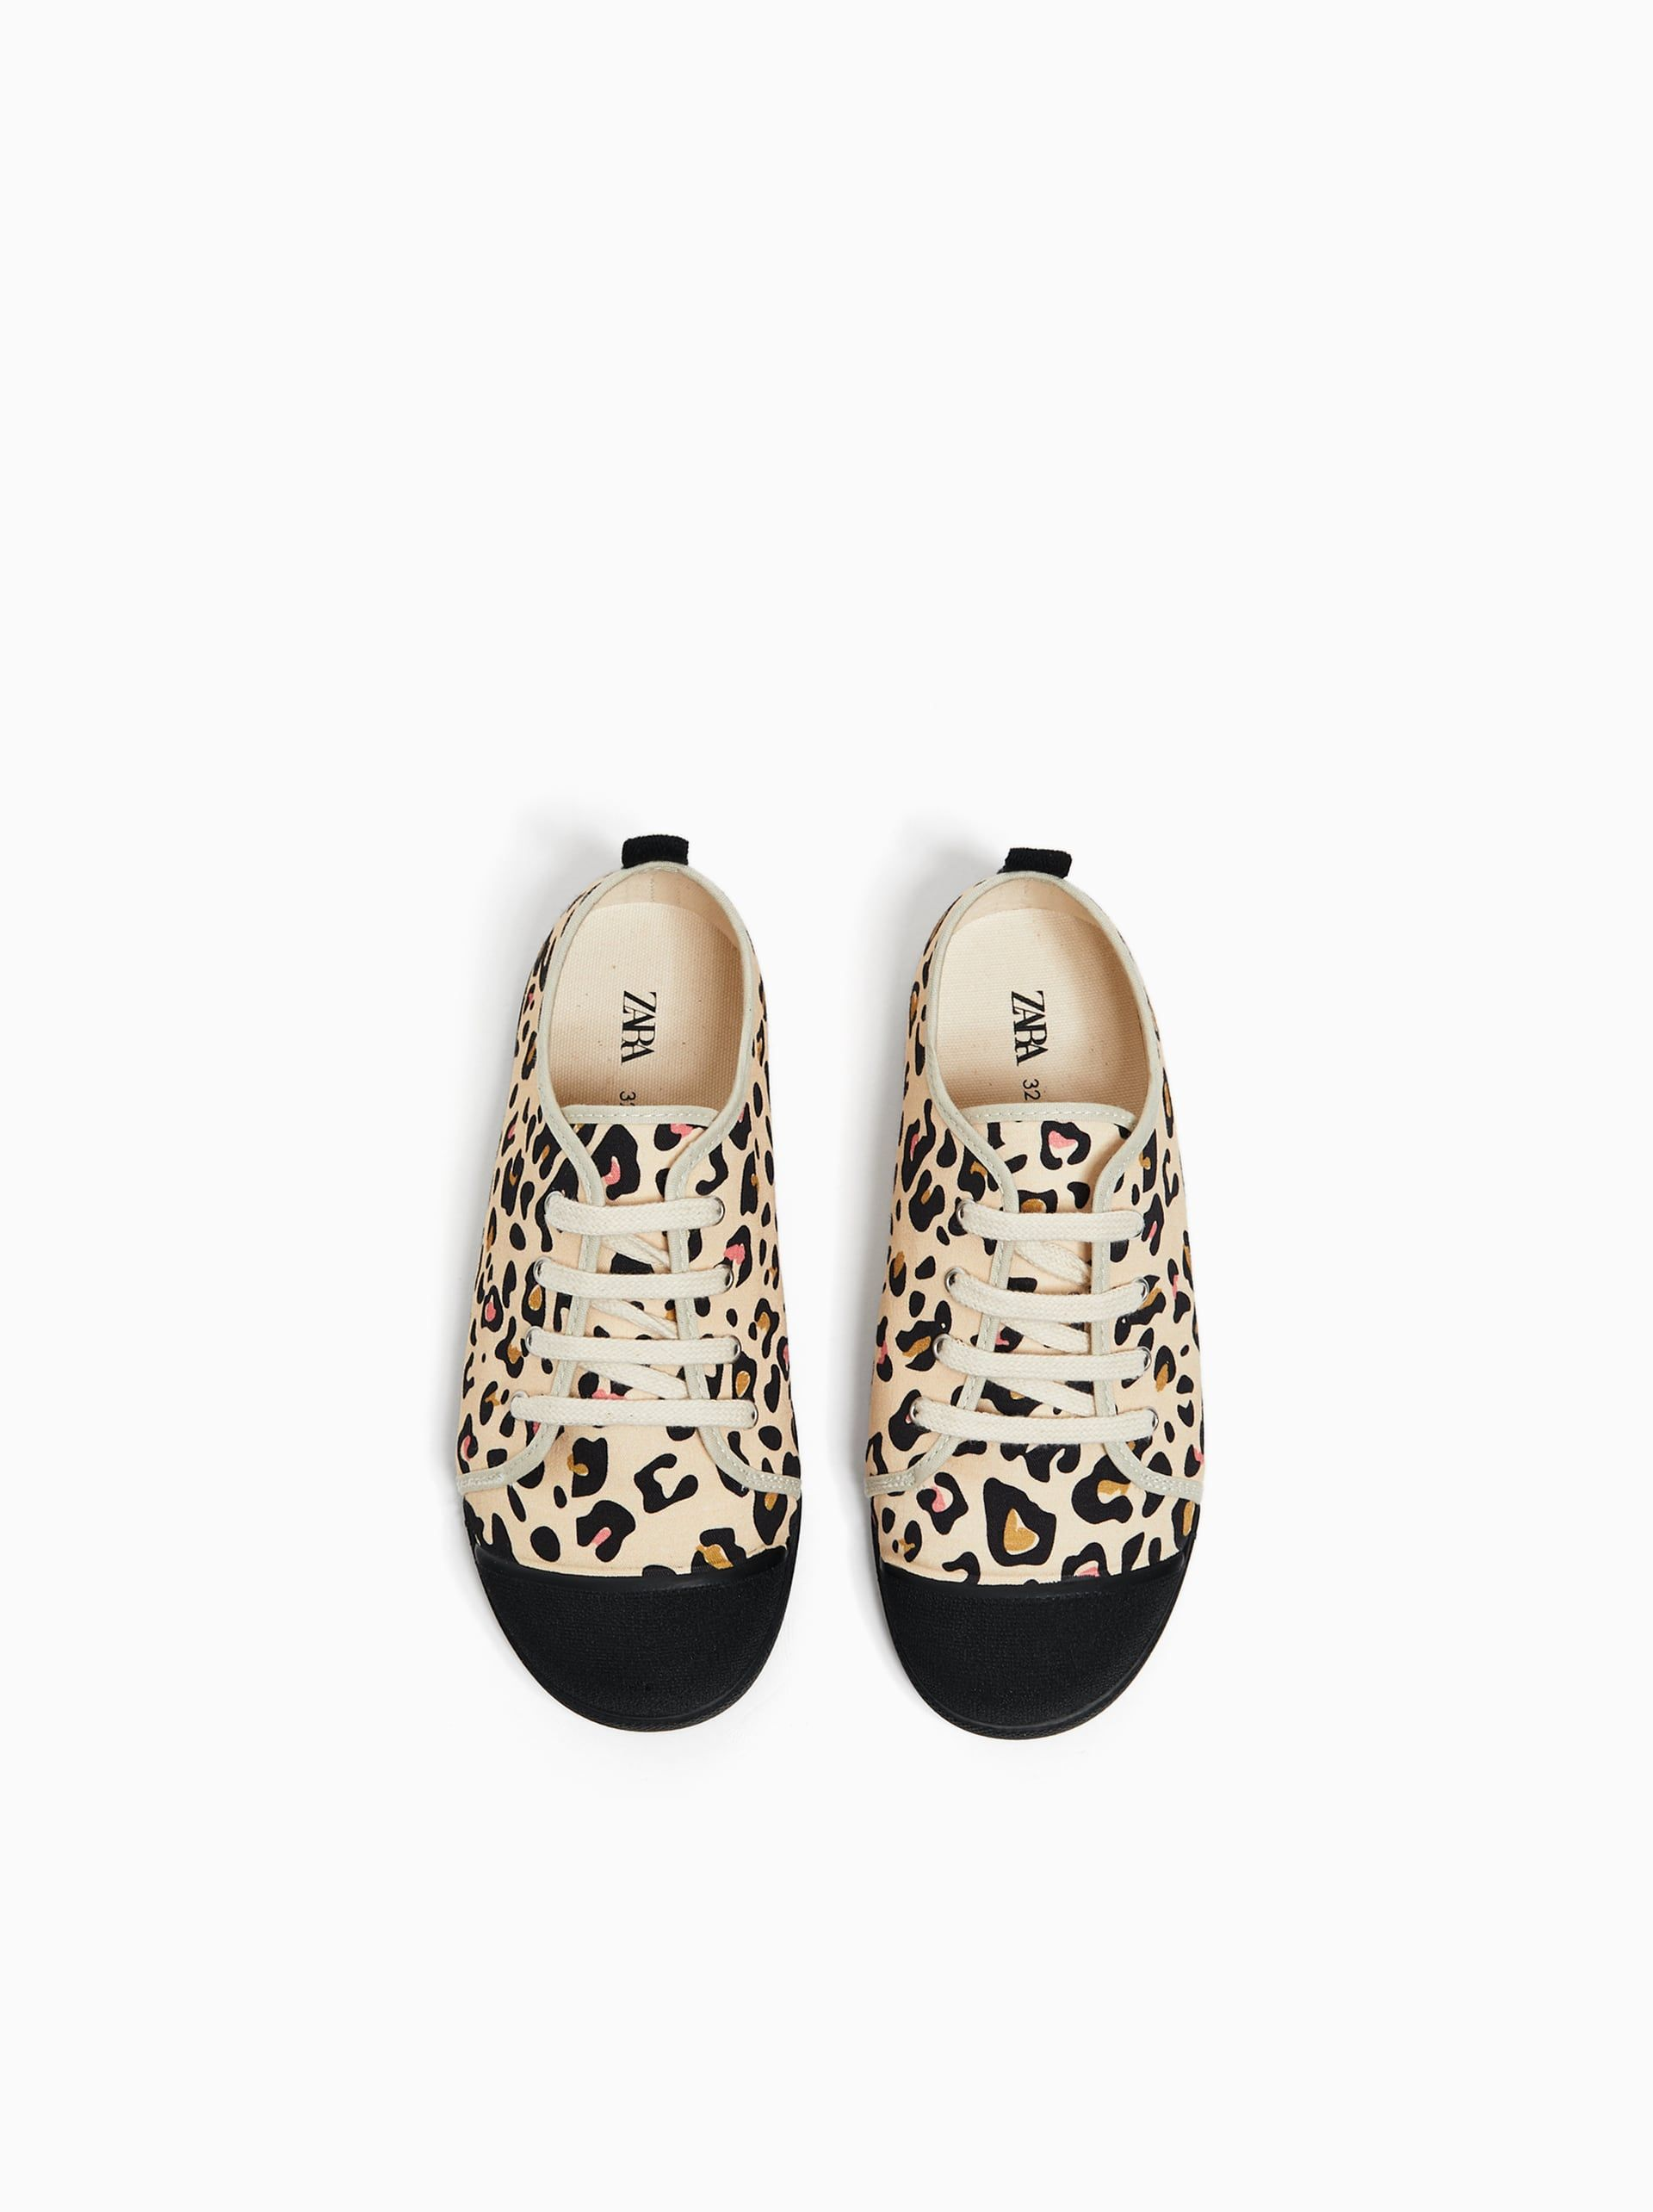 Girls Shoes New Collection Online Zara United States Girls Shoes Print Sneakers Leopard Print Sneakers